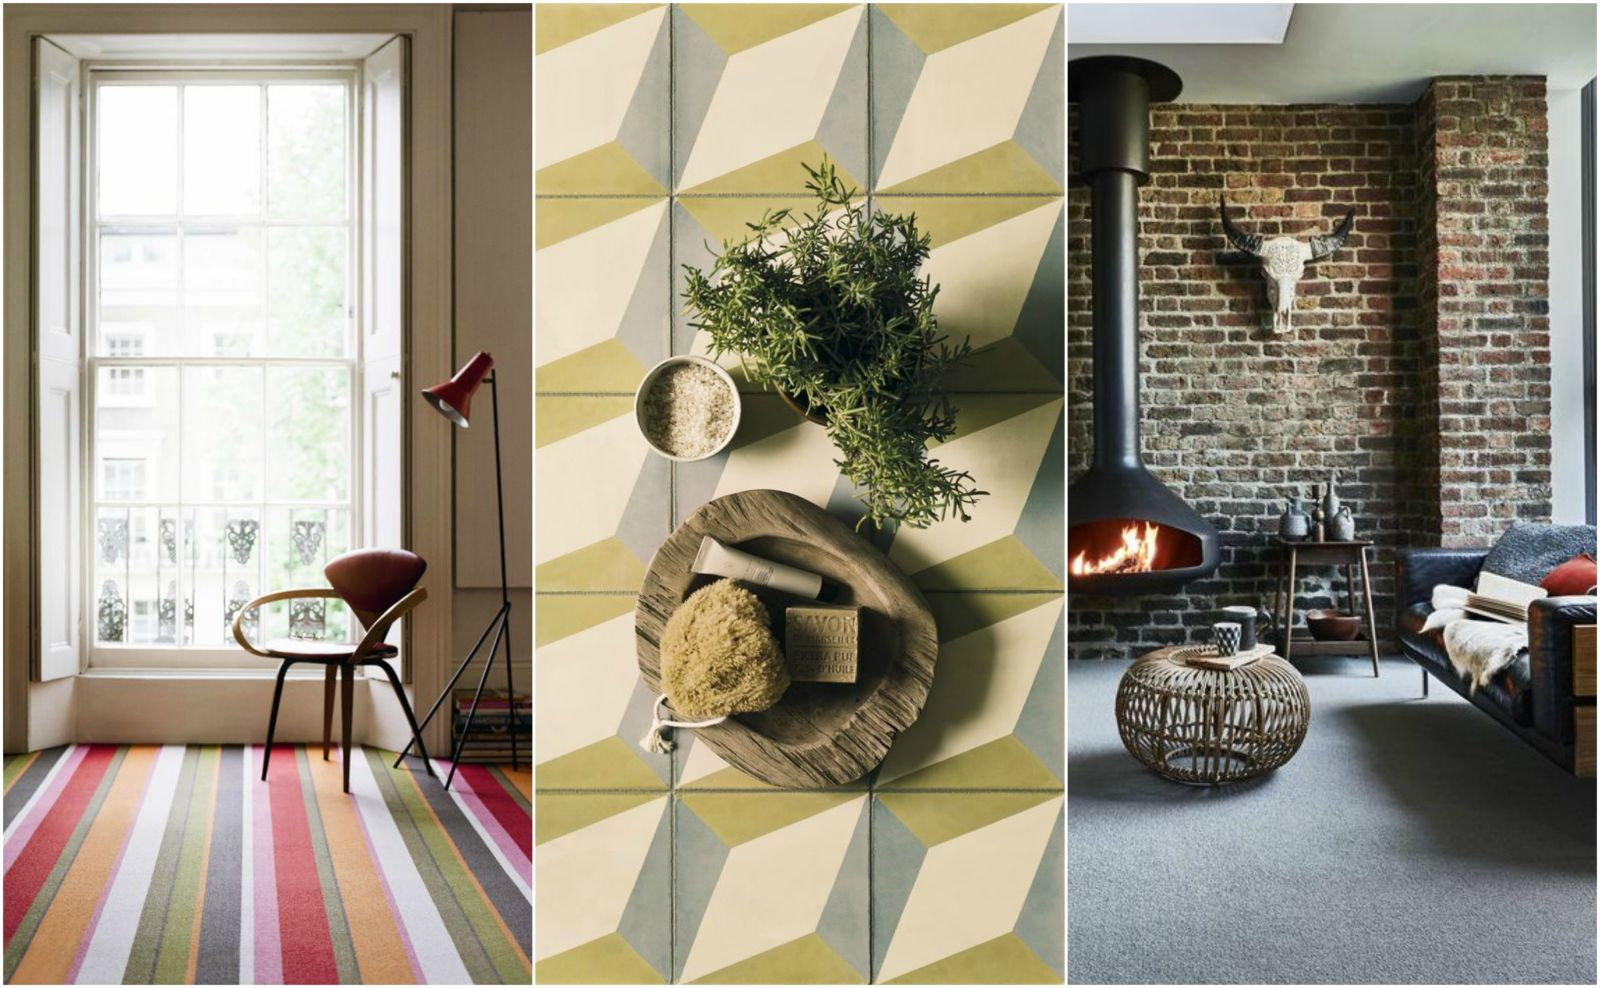 Superb Achieve A Fabulous Look With The Latest Flooring Trends With Ideas To Suit  Every Room Of Part 32